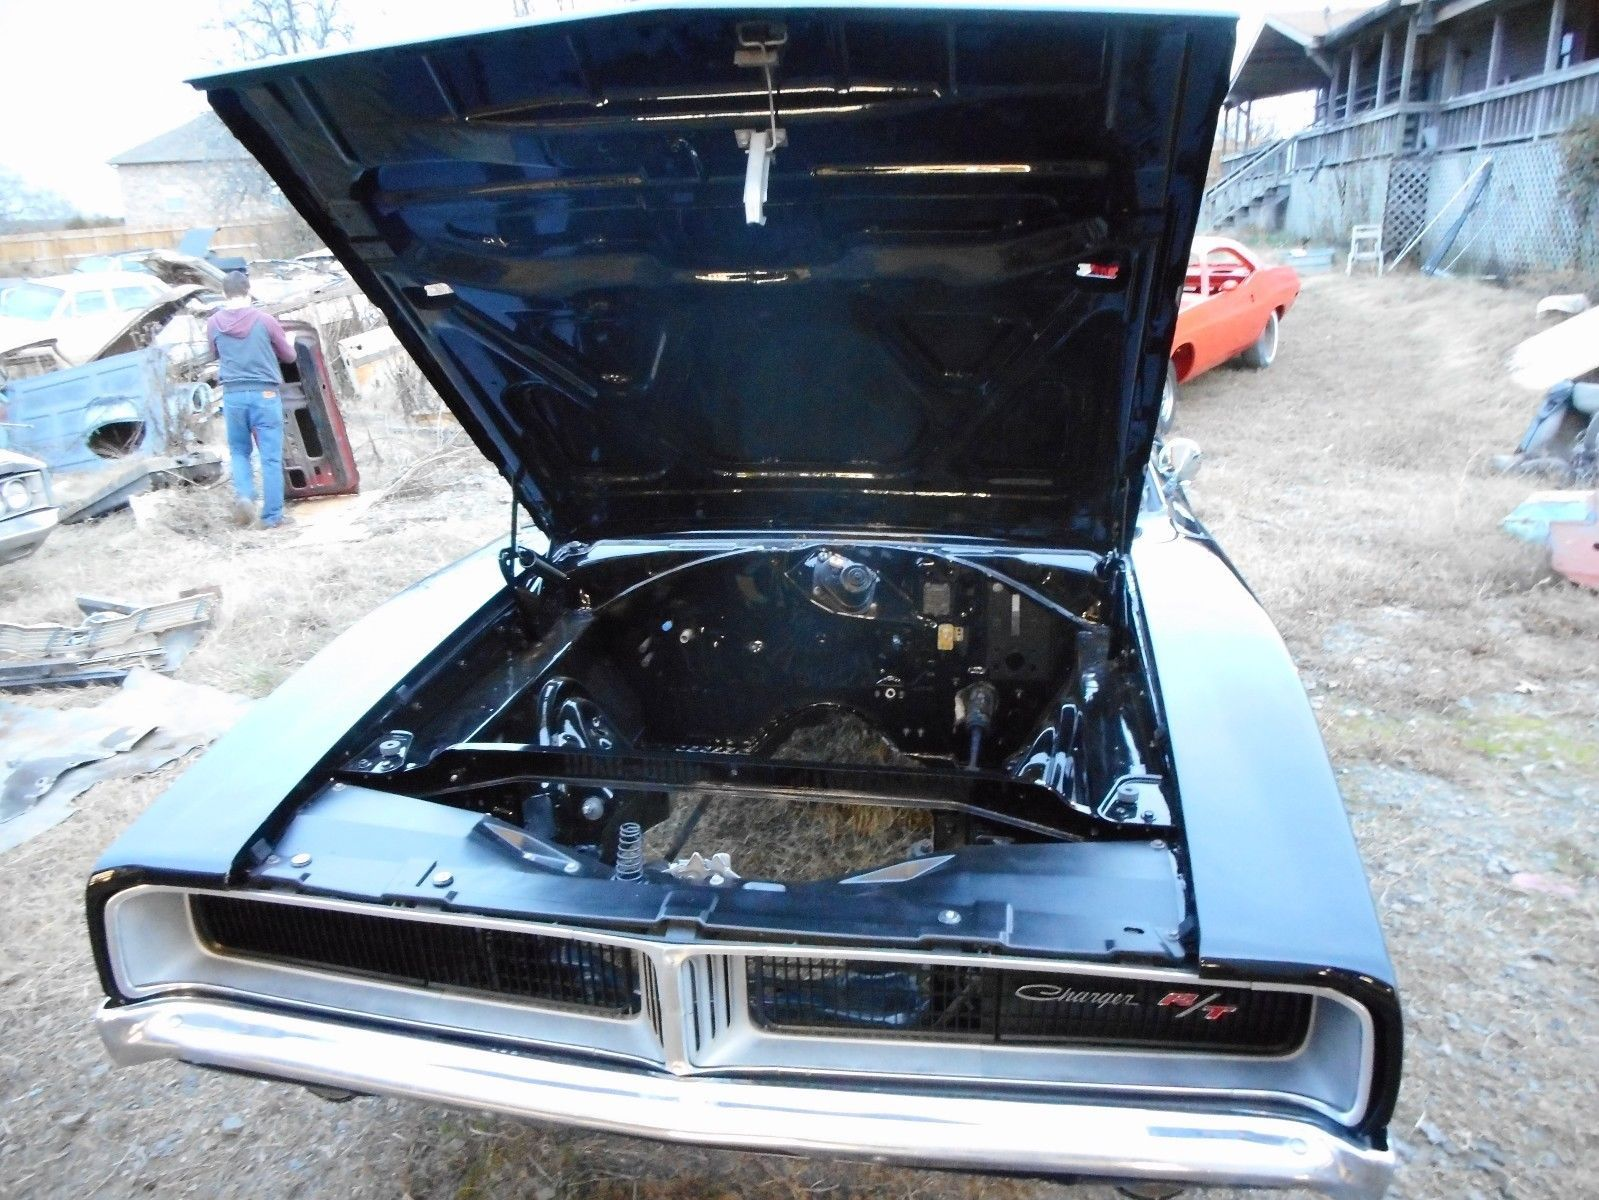 1969 Dodge Charger | Dodge charger, Motor car and Cars